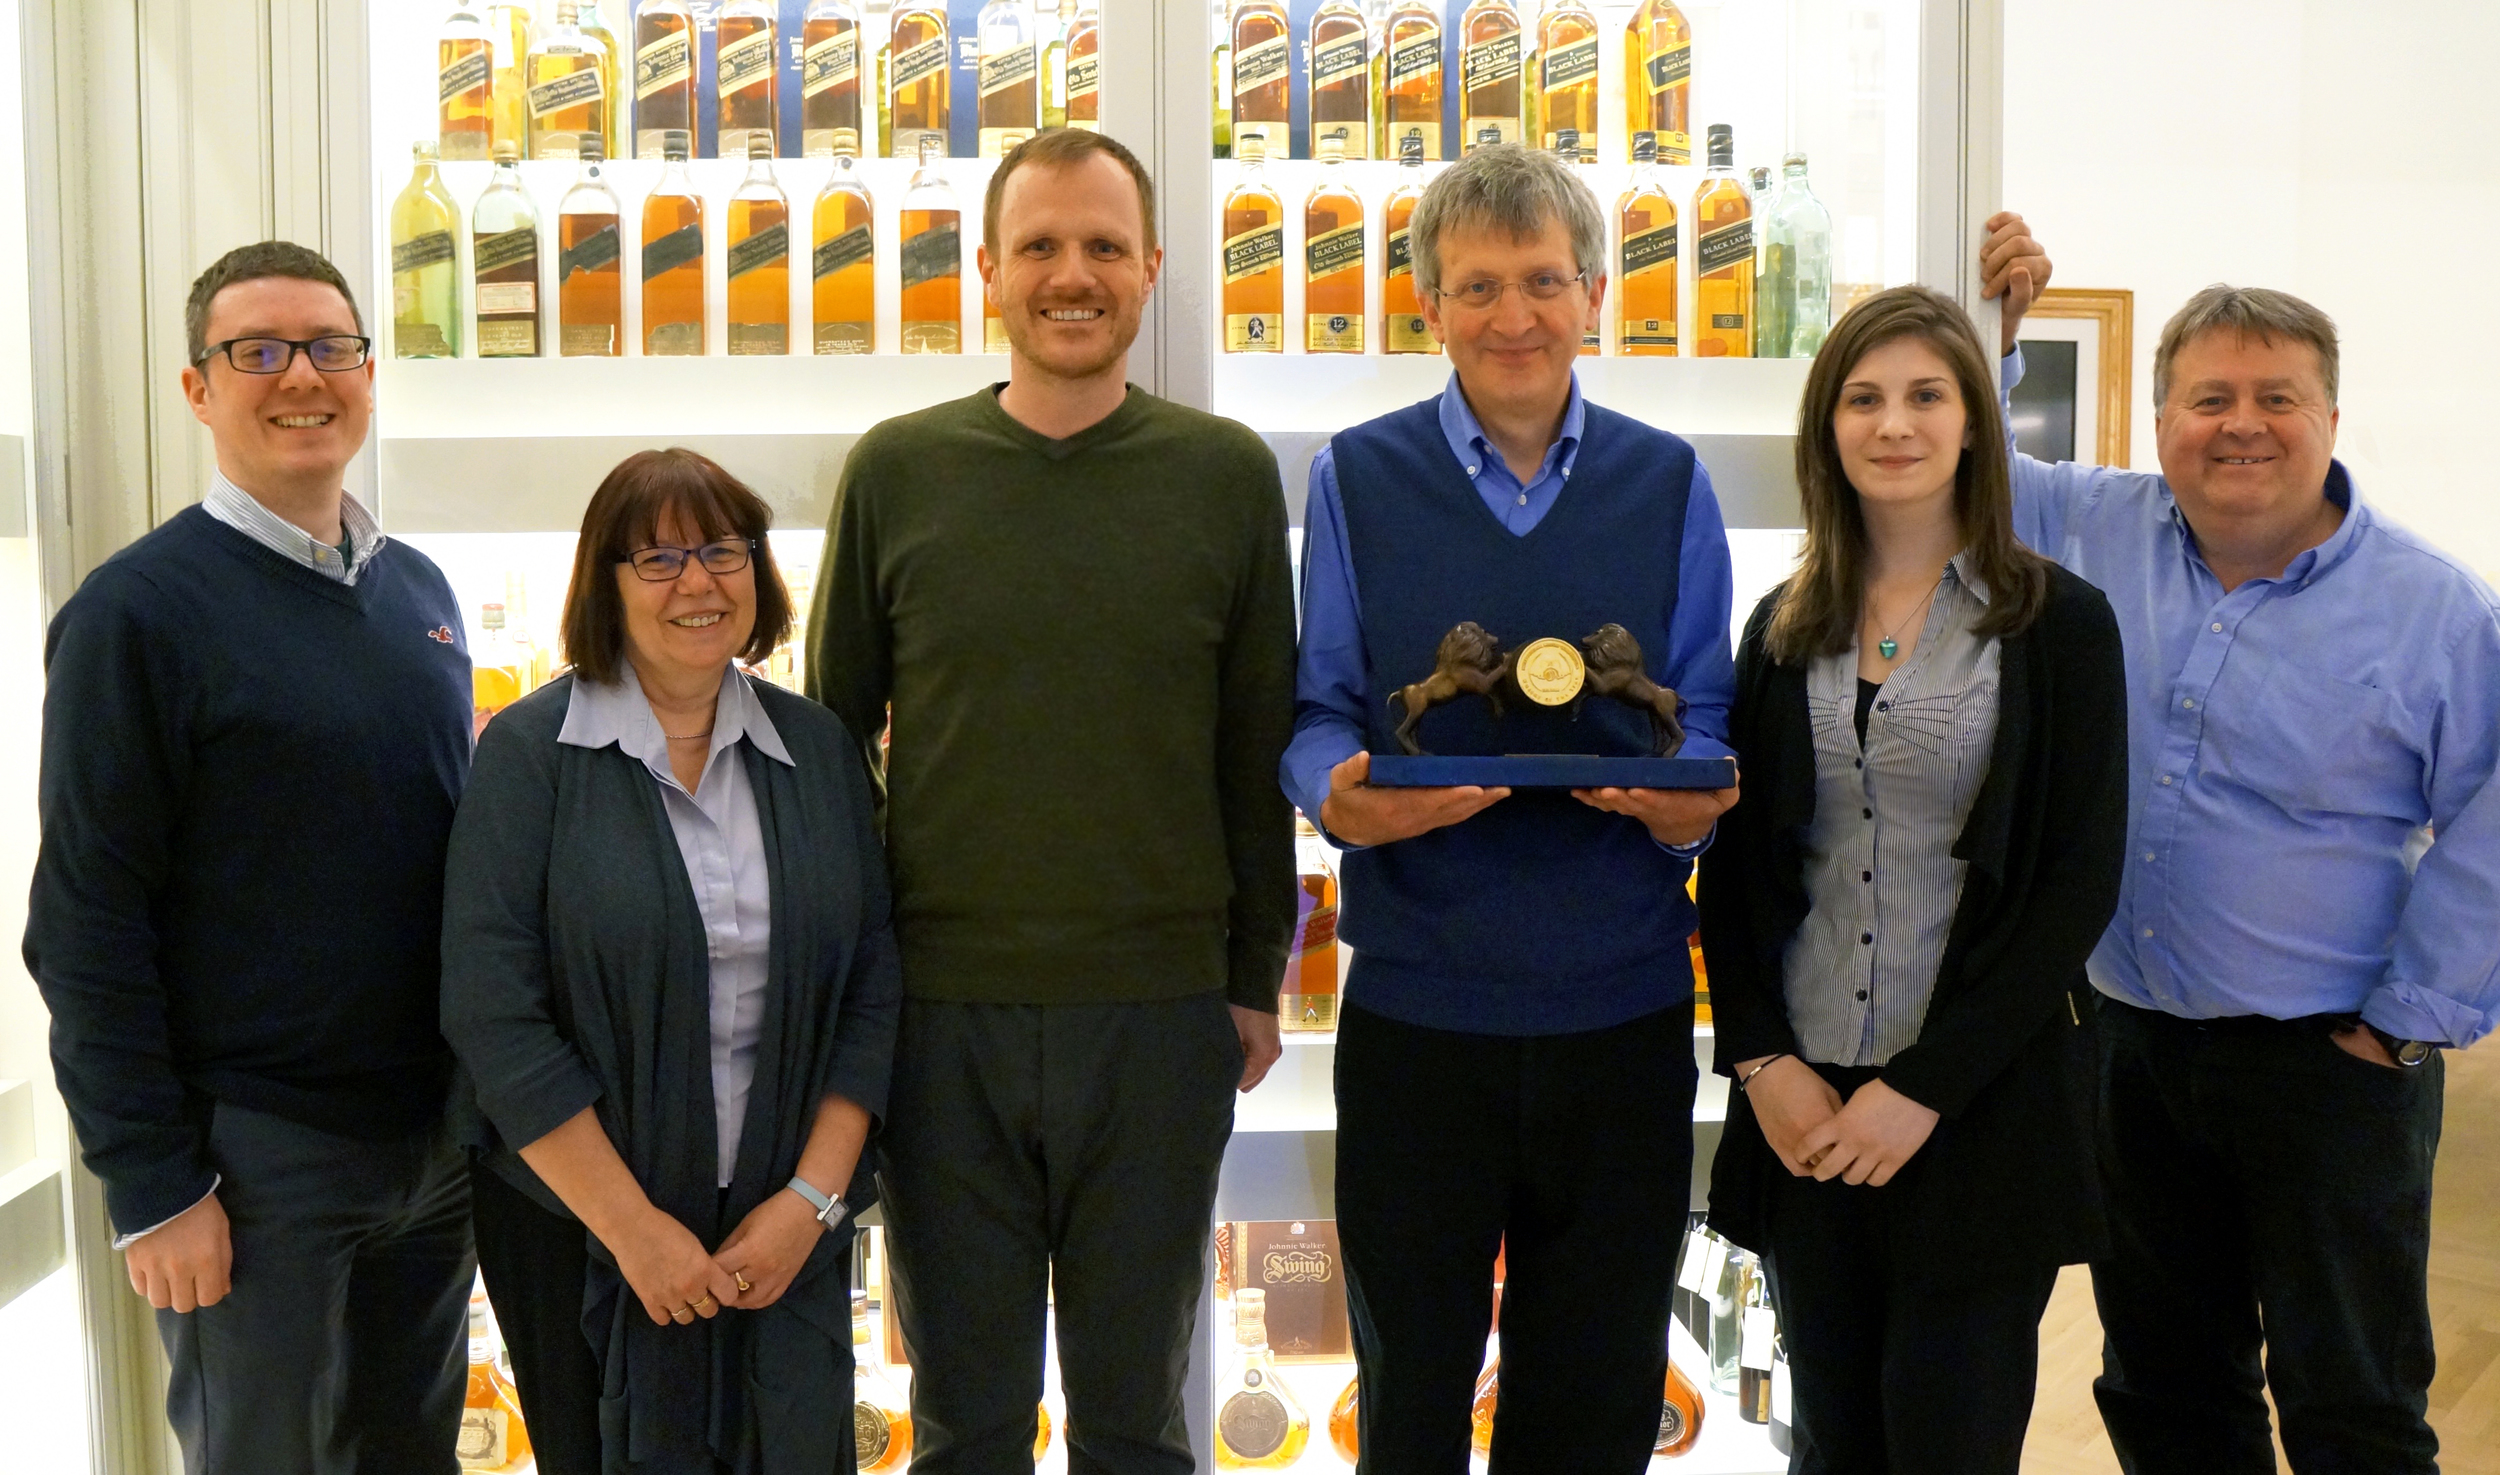 Jim Beveridge, Master Blender at Diageo, and his team receiving the Golden Barrel Trophy during a special award ceremony held at Diageo Archive.